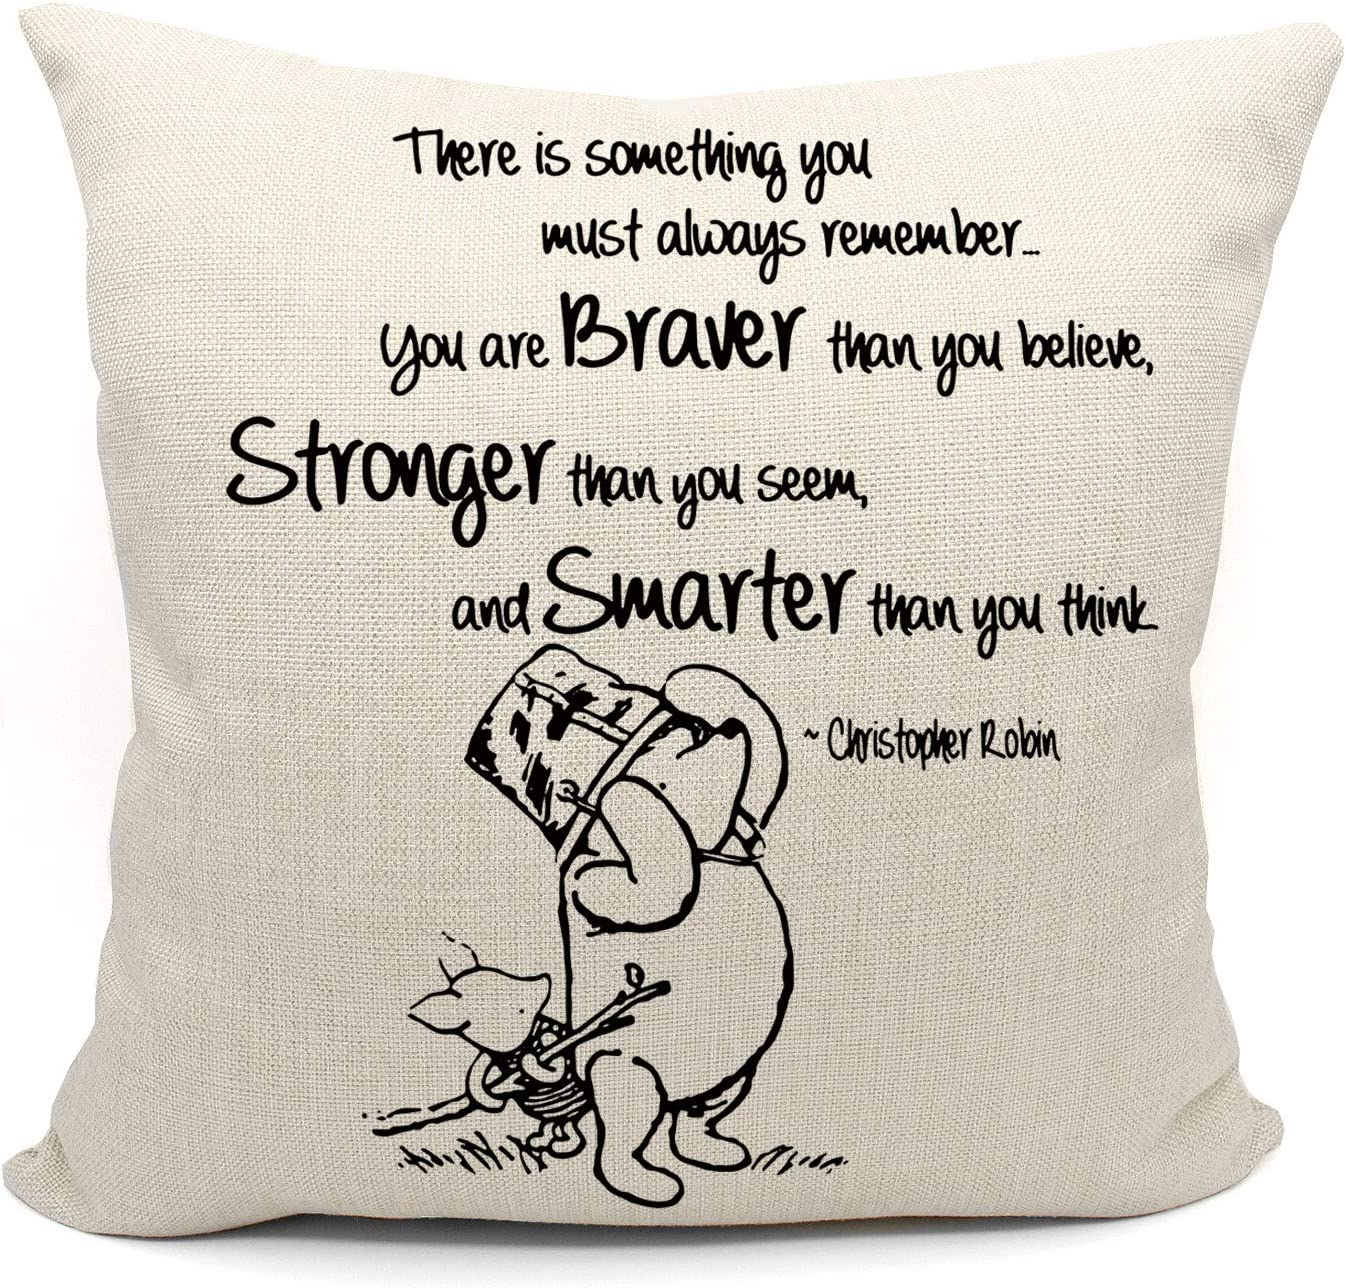 Mancheng-zi Cartoon Winnie The Pooh Throw Pillow Case, Friend Friendship Quote Gift, 18 x 18 Inch Linen Cushion Cover for Sofa Couch Bed